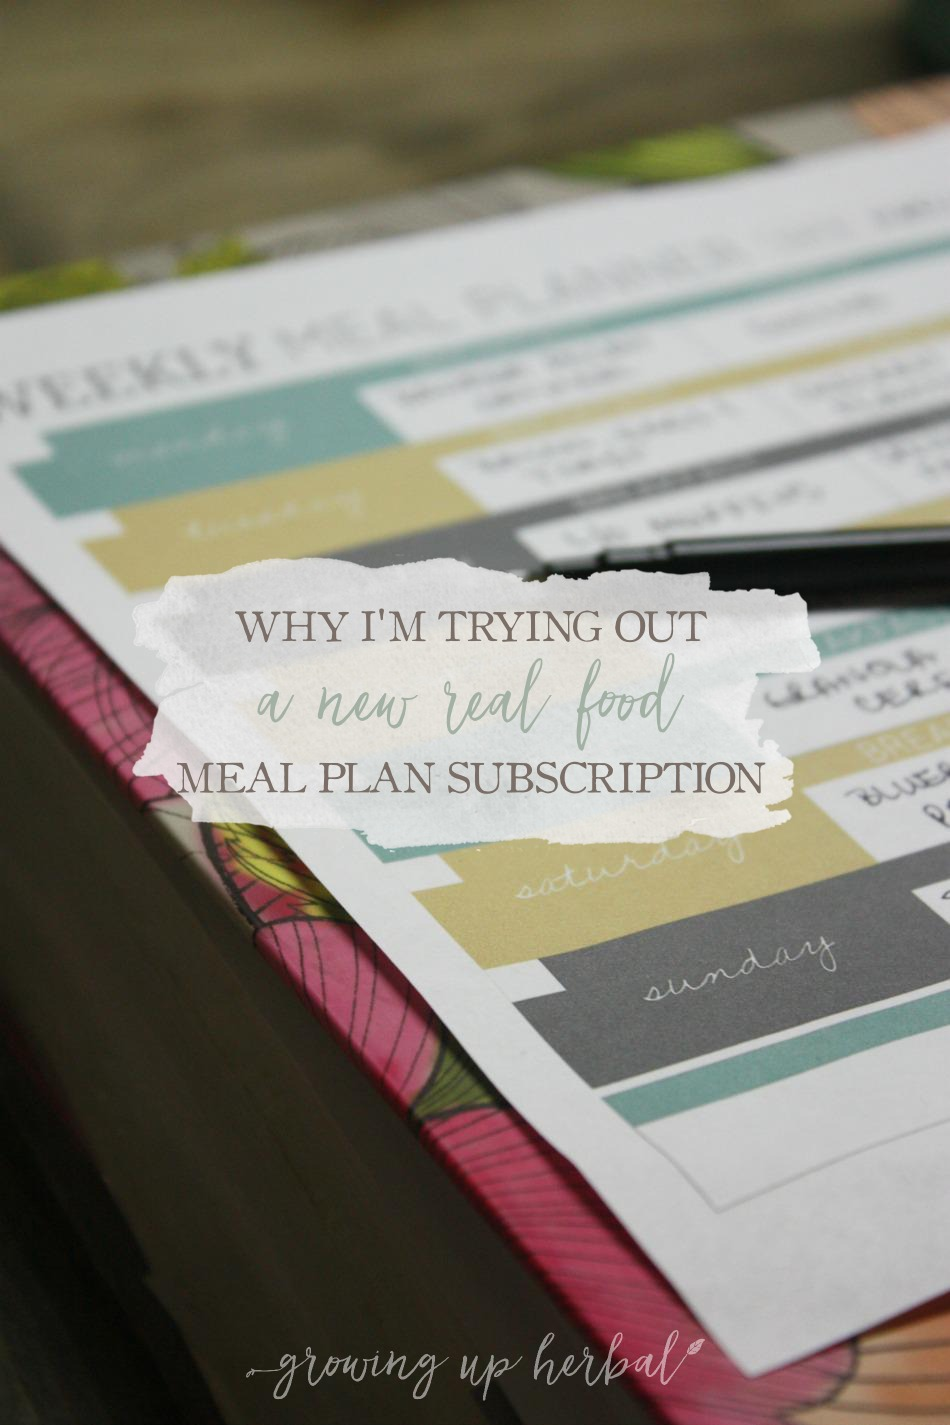 Why I'm Trying Out A New Real Food Meal Plan Subscription | Growing Up Herbal | I've finally found a real food meal plan subscription that looks just right!